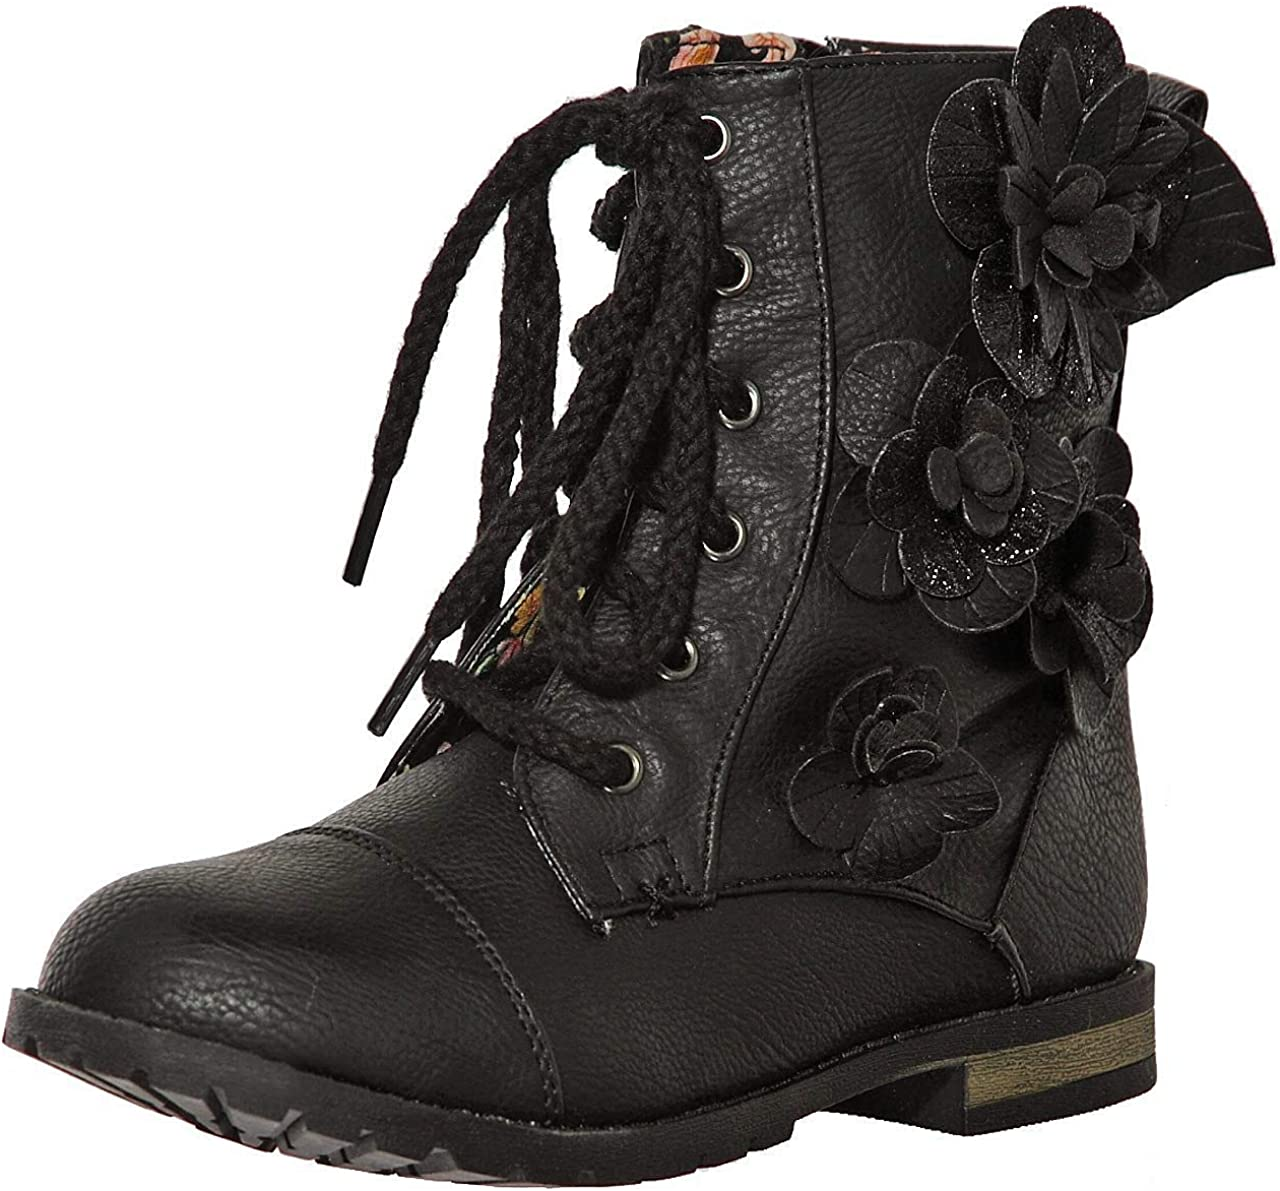 shoewhatever New! Military Combat Boot Fold-Over Cuff with Zipper for Girls